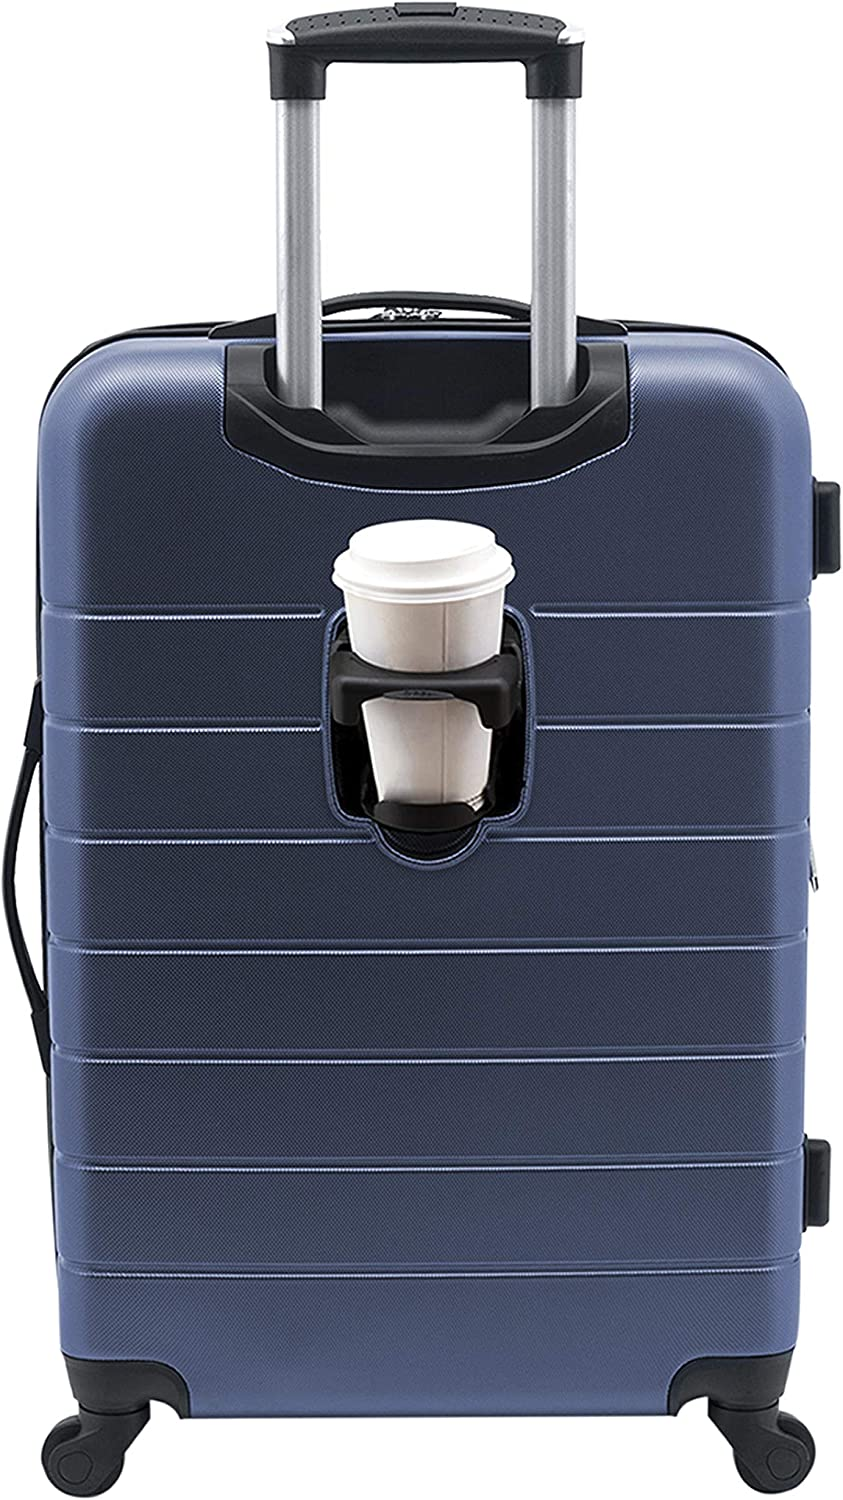 """Wrangler 20"""" Smart Spinner Carry-On Luggage With Usb Charging Port, 20 Inch Carry-On, Navy Blue"""